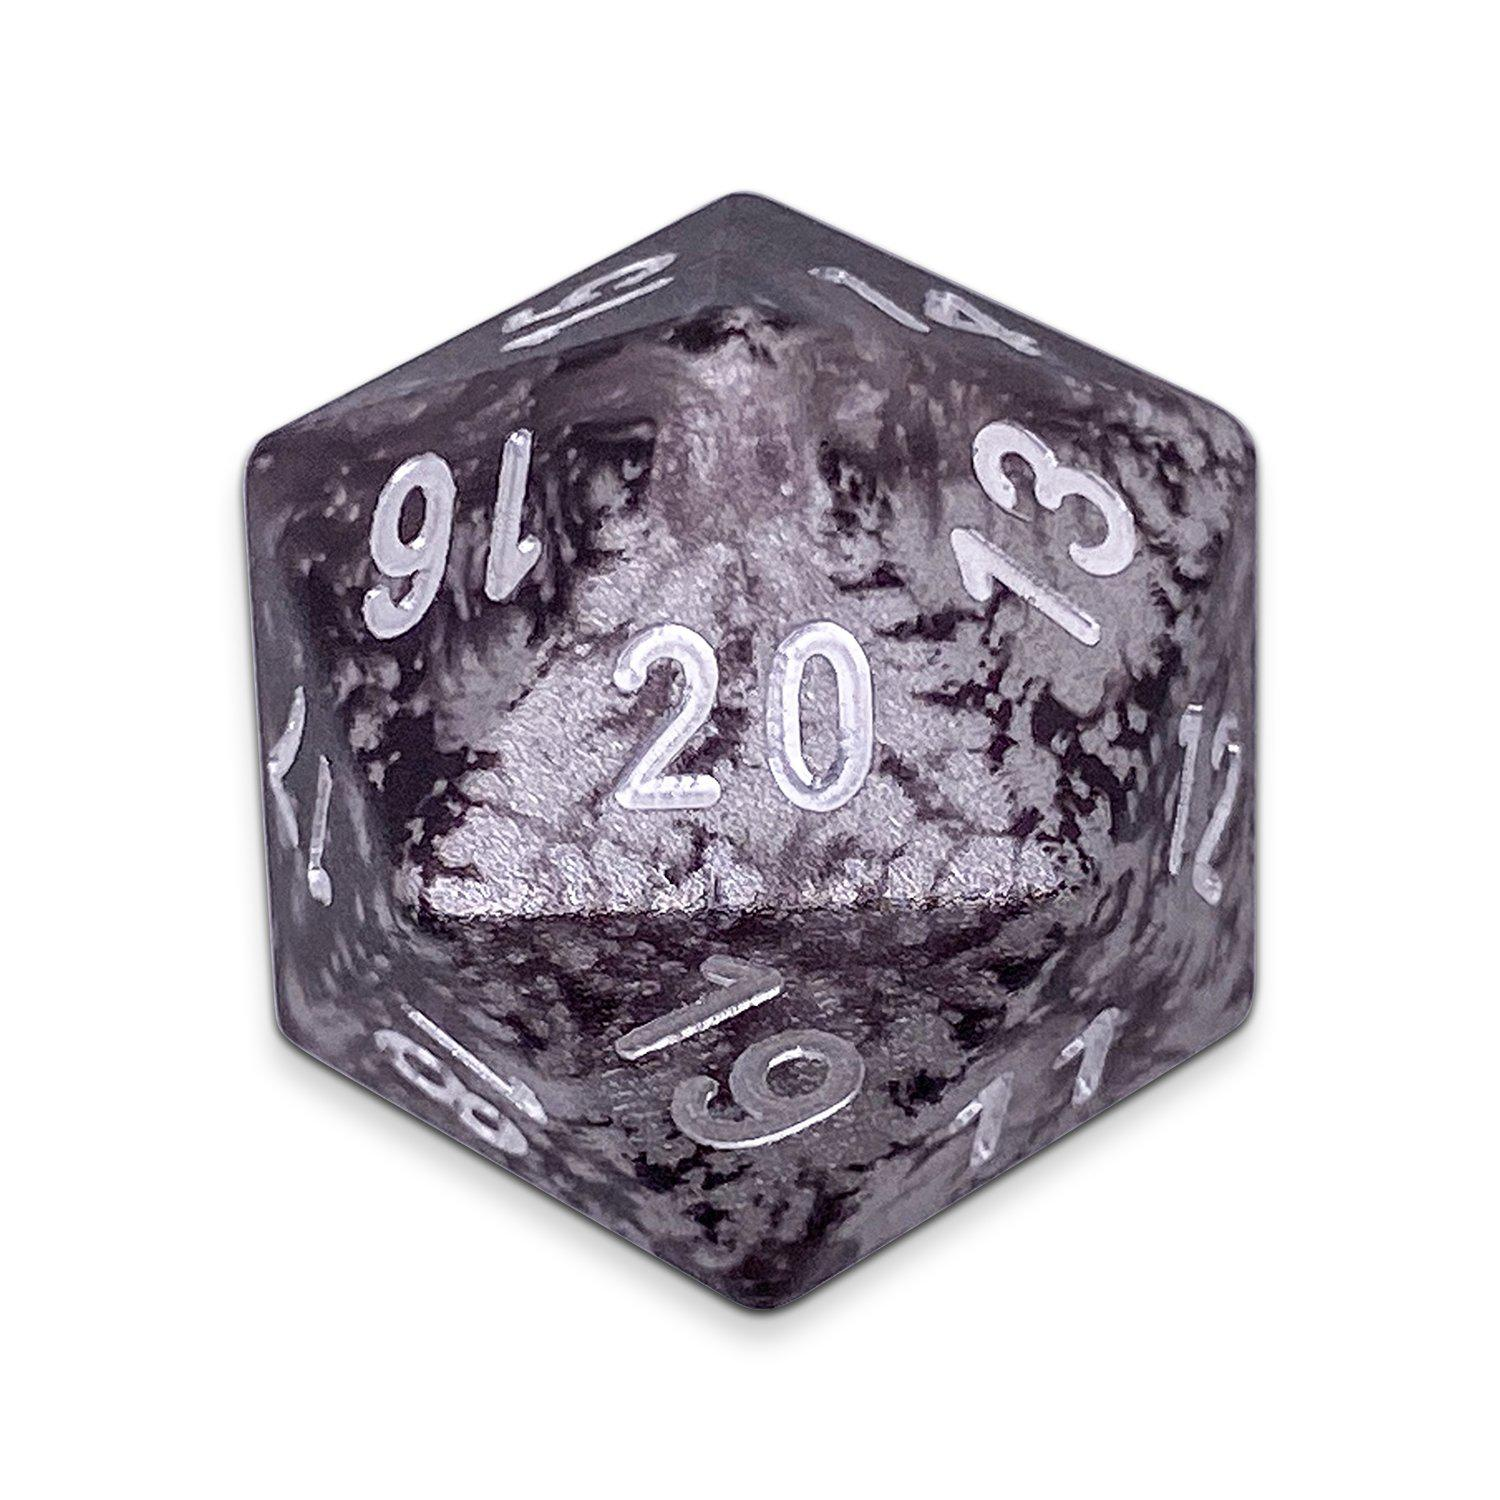 Single Wondrous Dice® Countdown D20 in Mummy Lord by Norse Foundry 6063 Aircraft Grade Aluminum